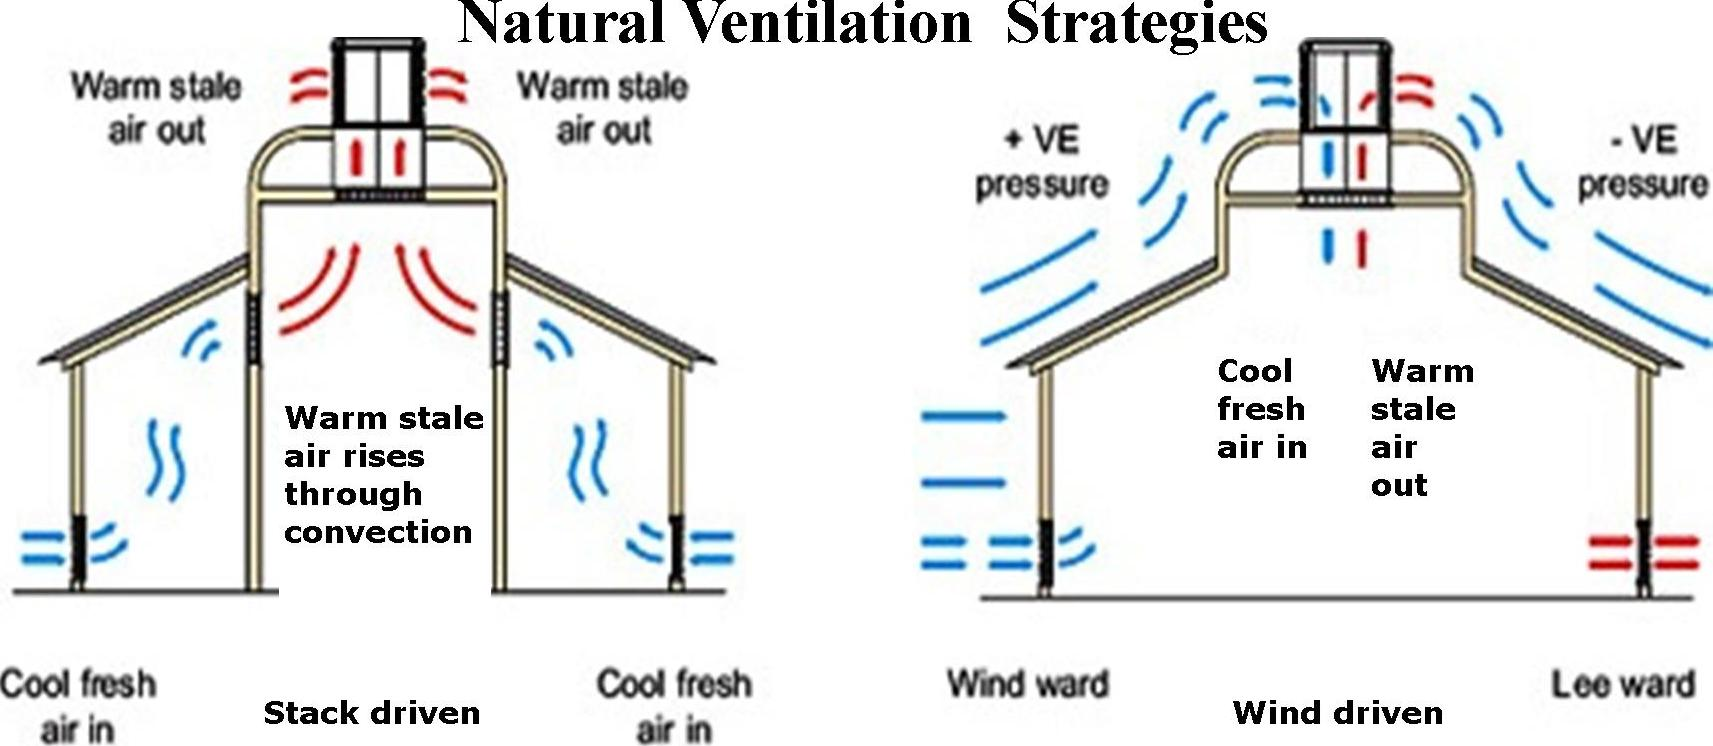 heat recovery ventilation system diagram heat get free image about wiring diagram. Black Bedroom Furniture Sets. Home Design Ideas